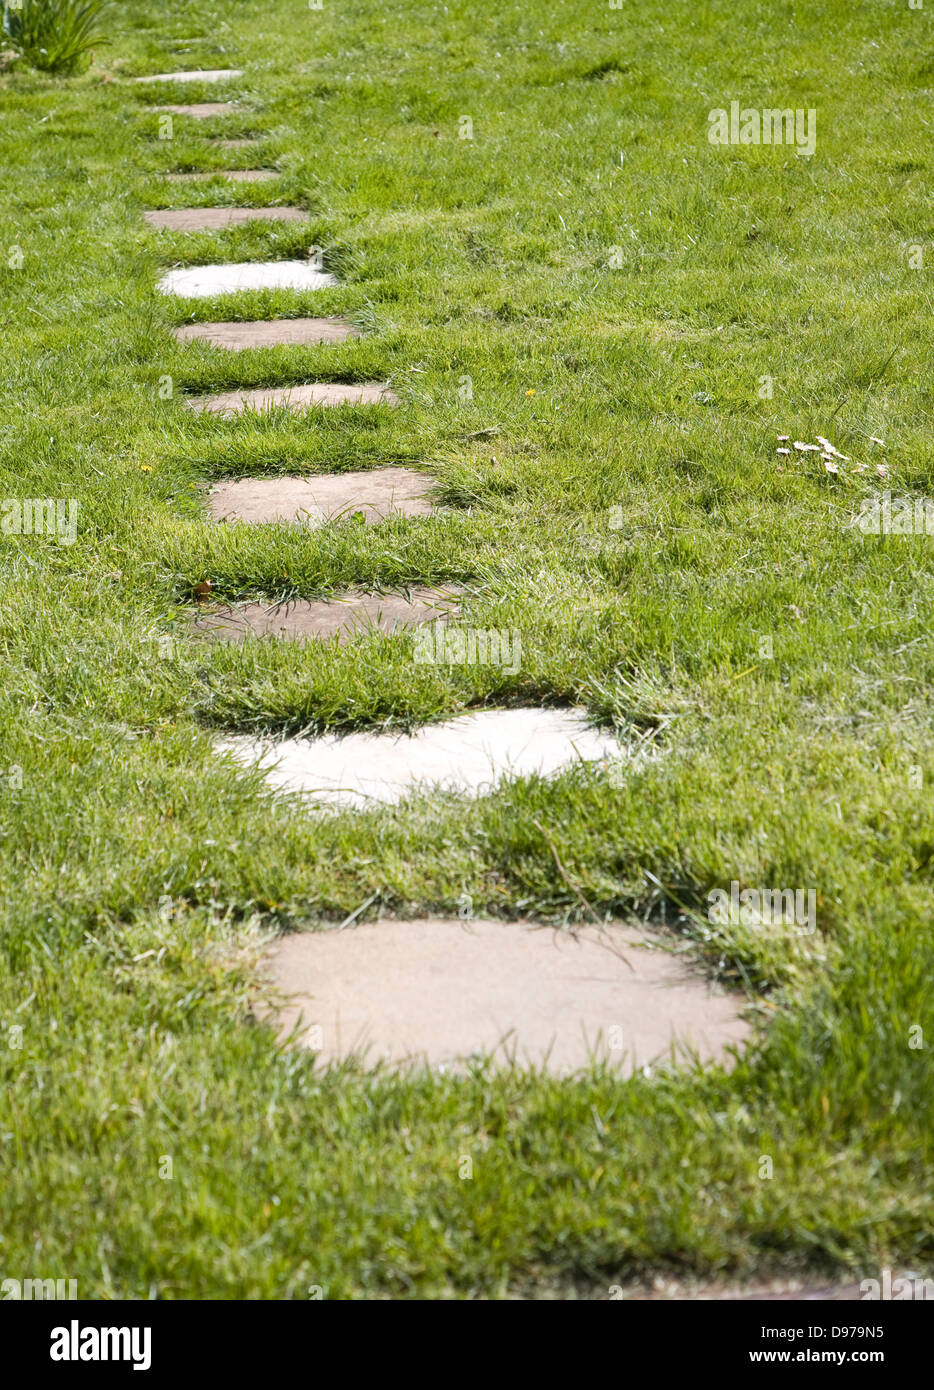 Stepping stone paving slabs form a path across grass lawn ...